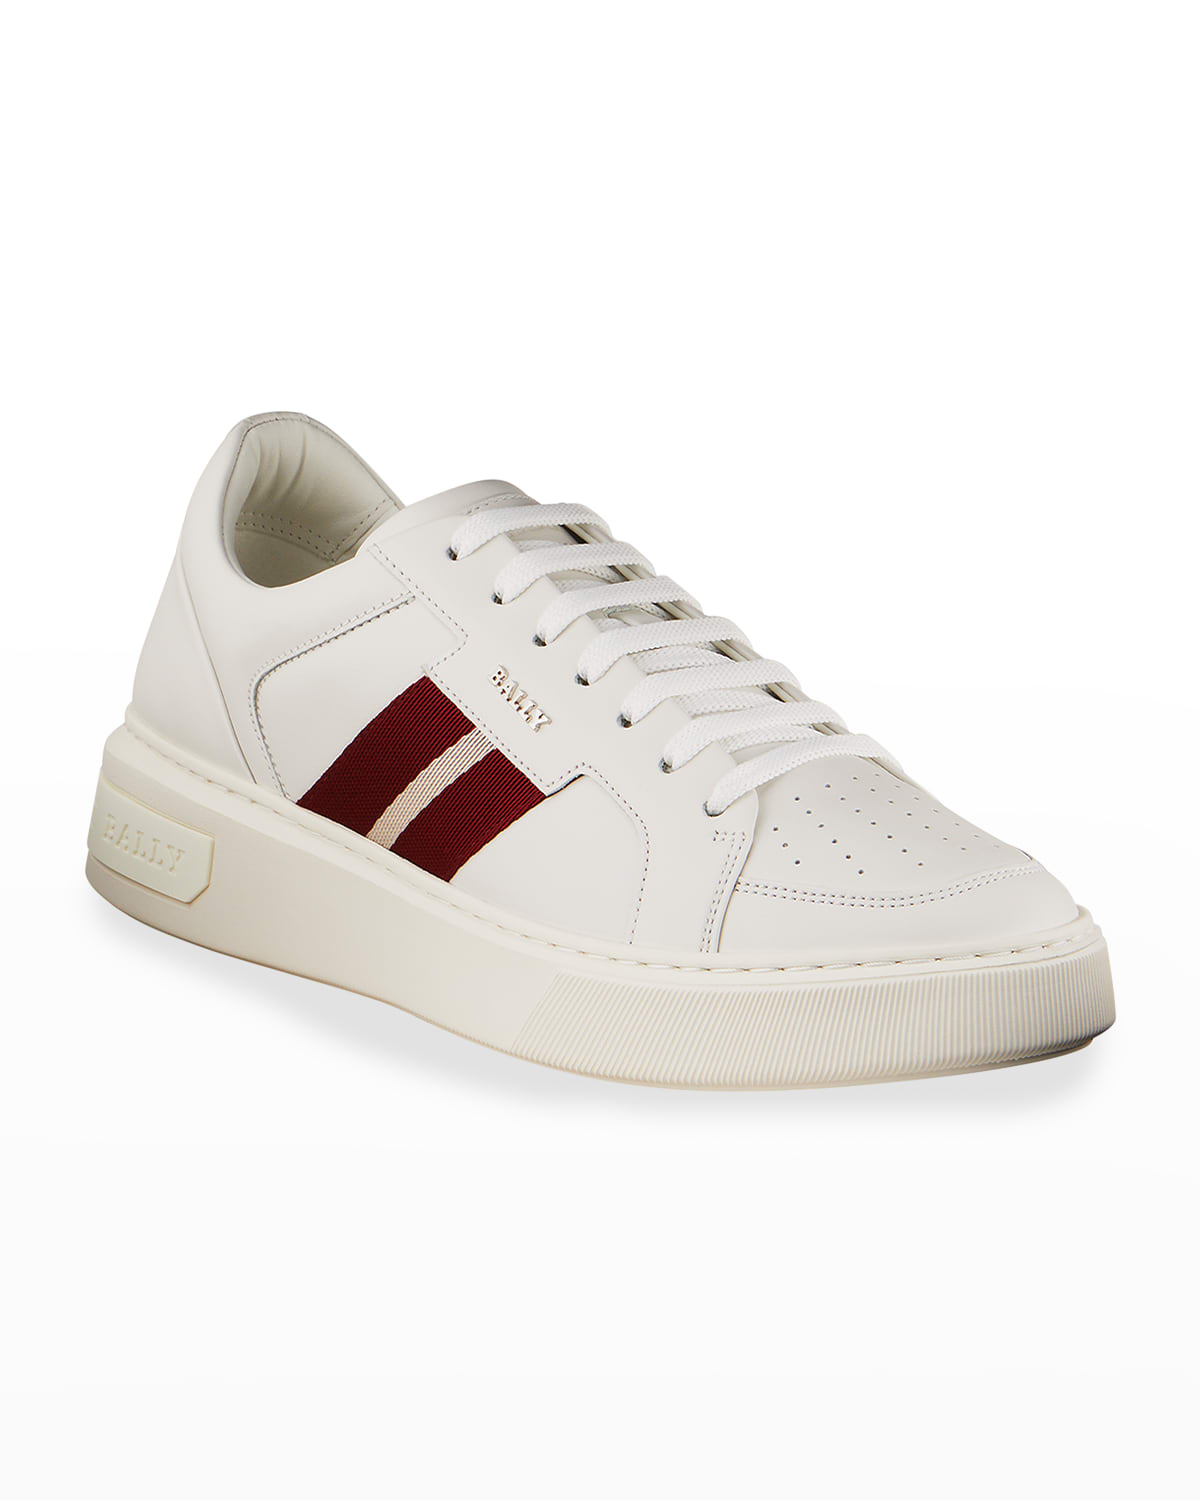 Men's Moony 07 Trainspotting Leather Low-Top Sneakers